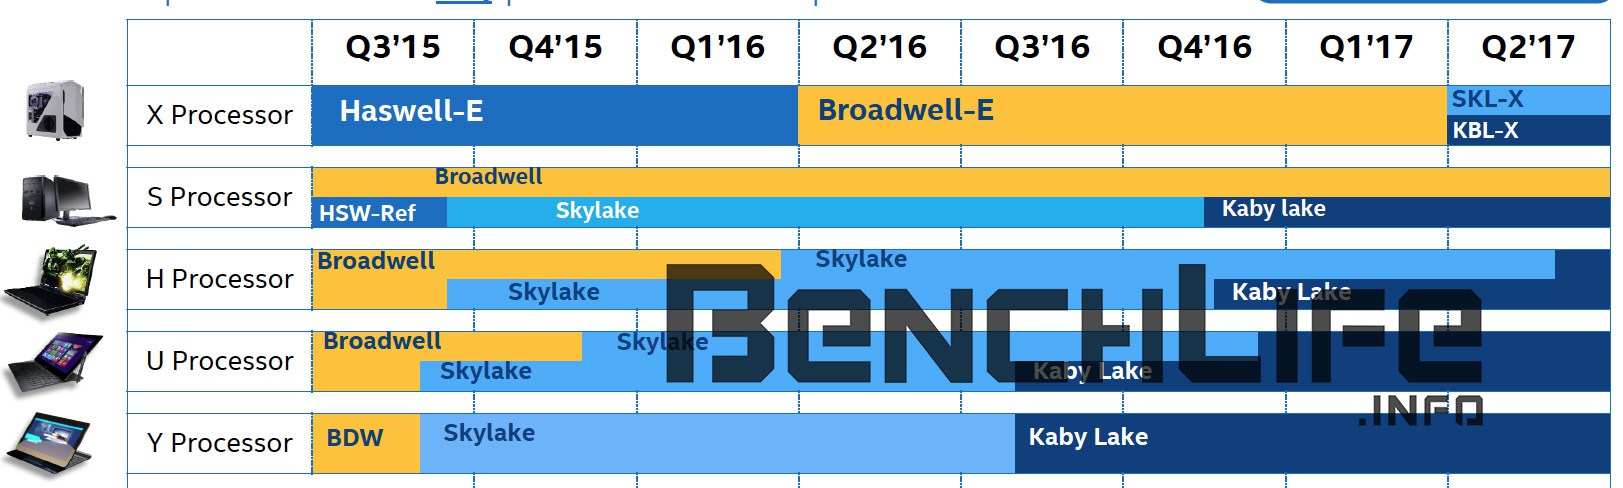 Intel-Skylake-X-and-Kaby-Lake-X-Leaked-Roadmap